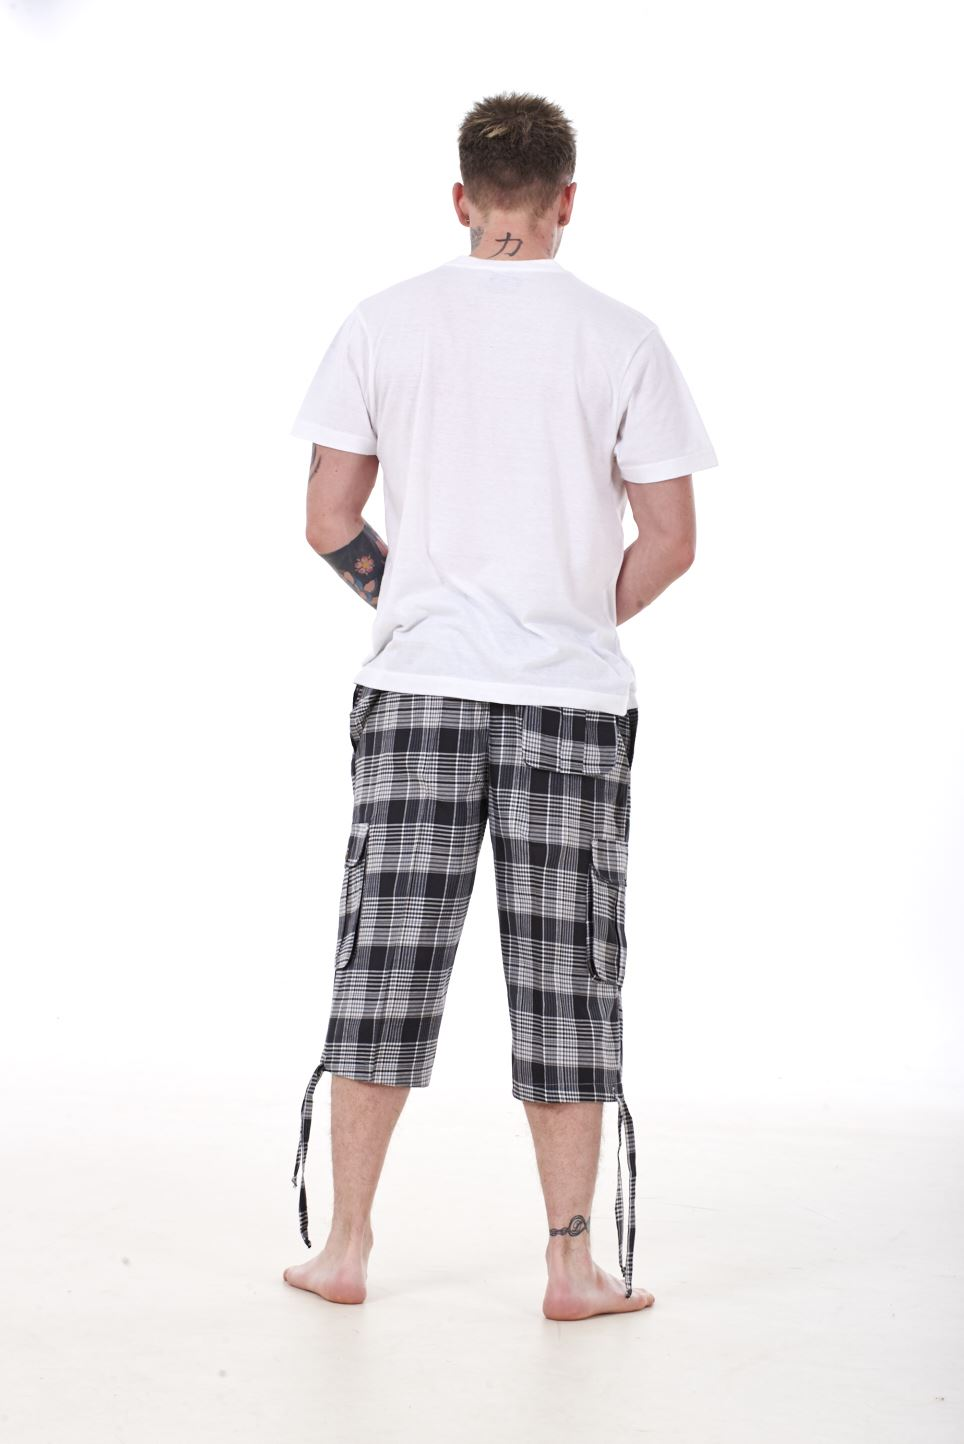 Mens-Check-Shorts-3-4-Length-by-Malay-Apparel-Cotton-Blend-Lounge-Casual-Wear thumbnail 4